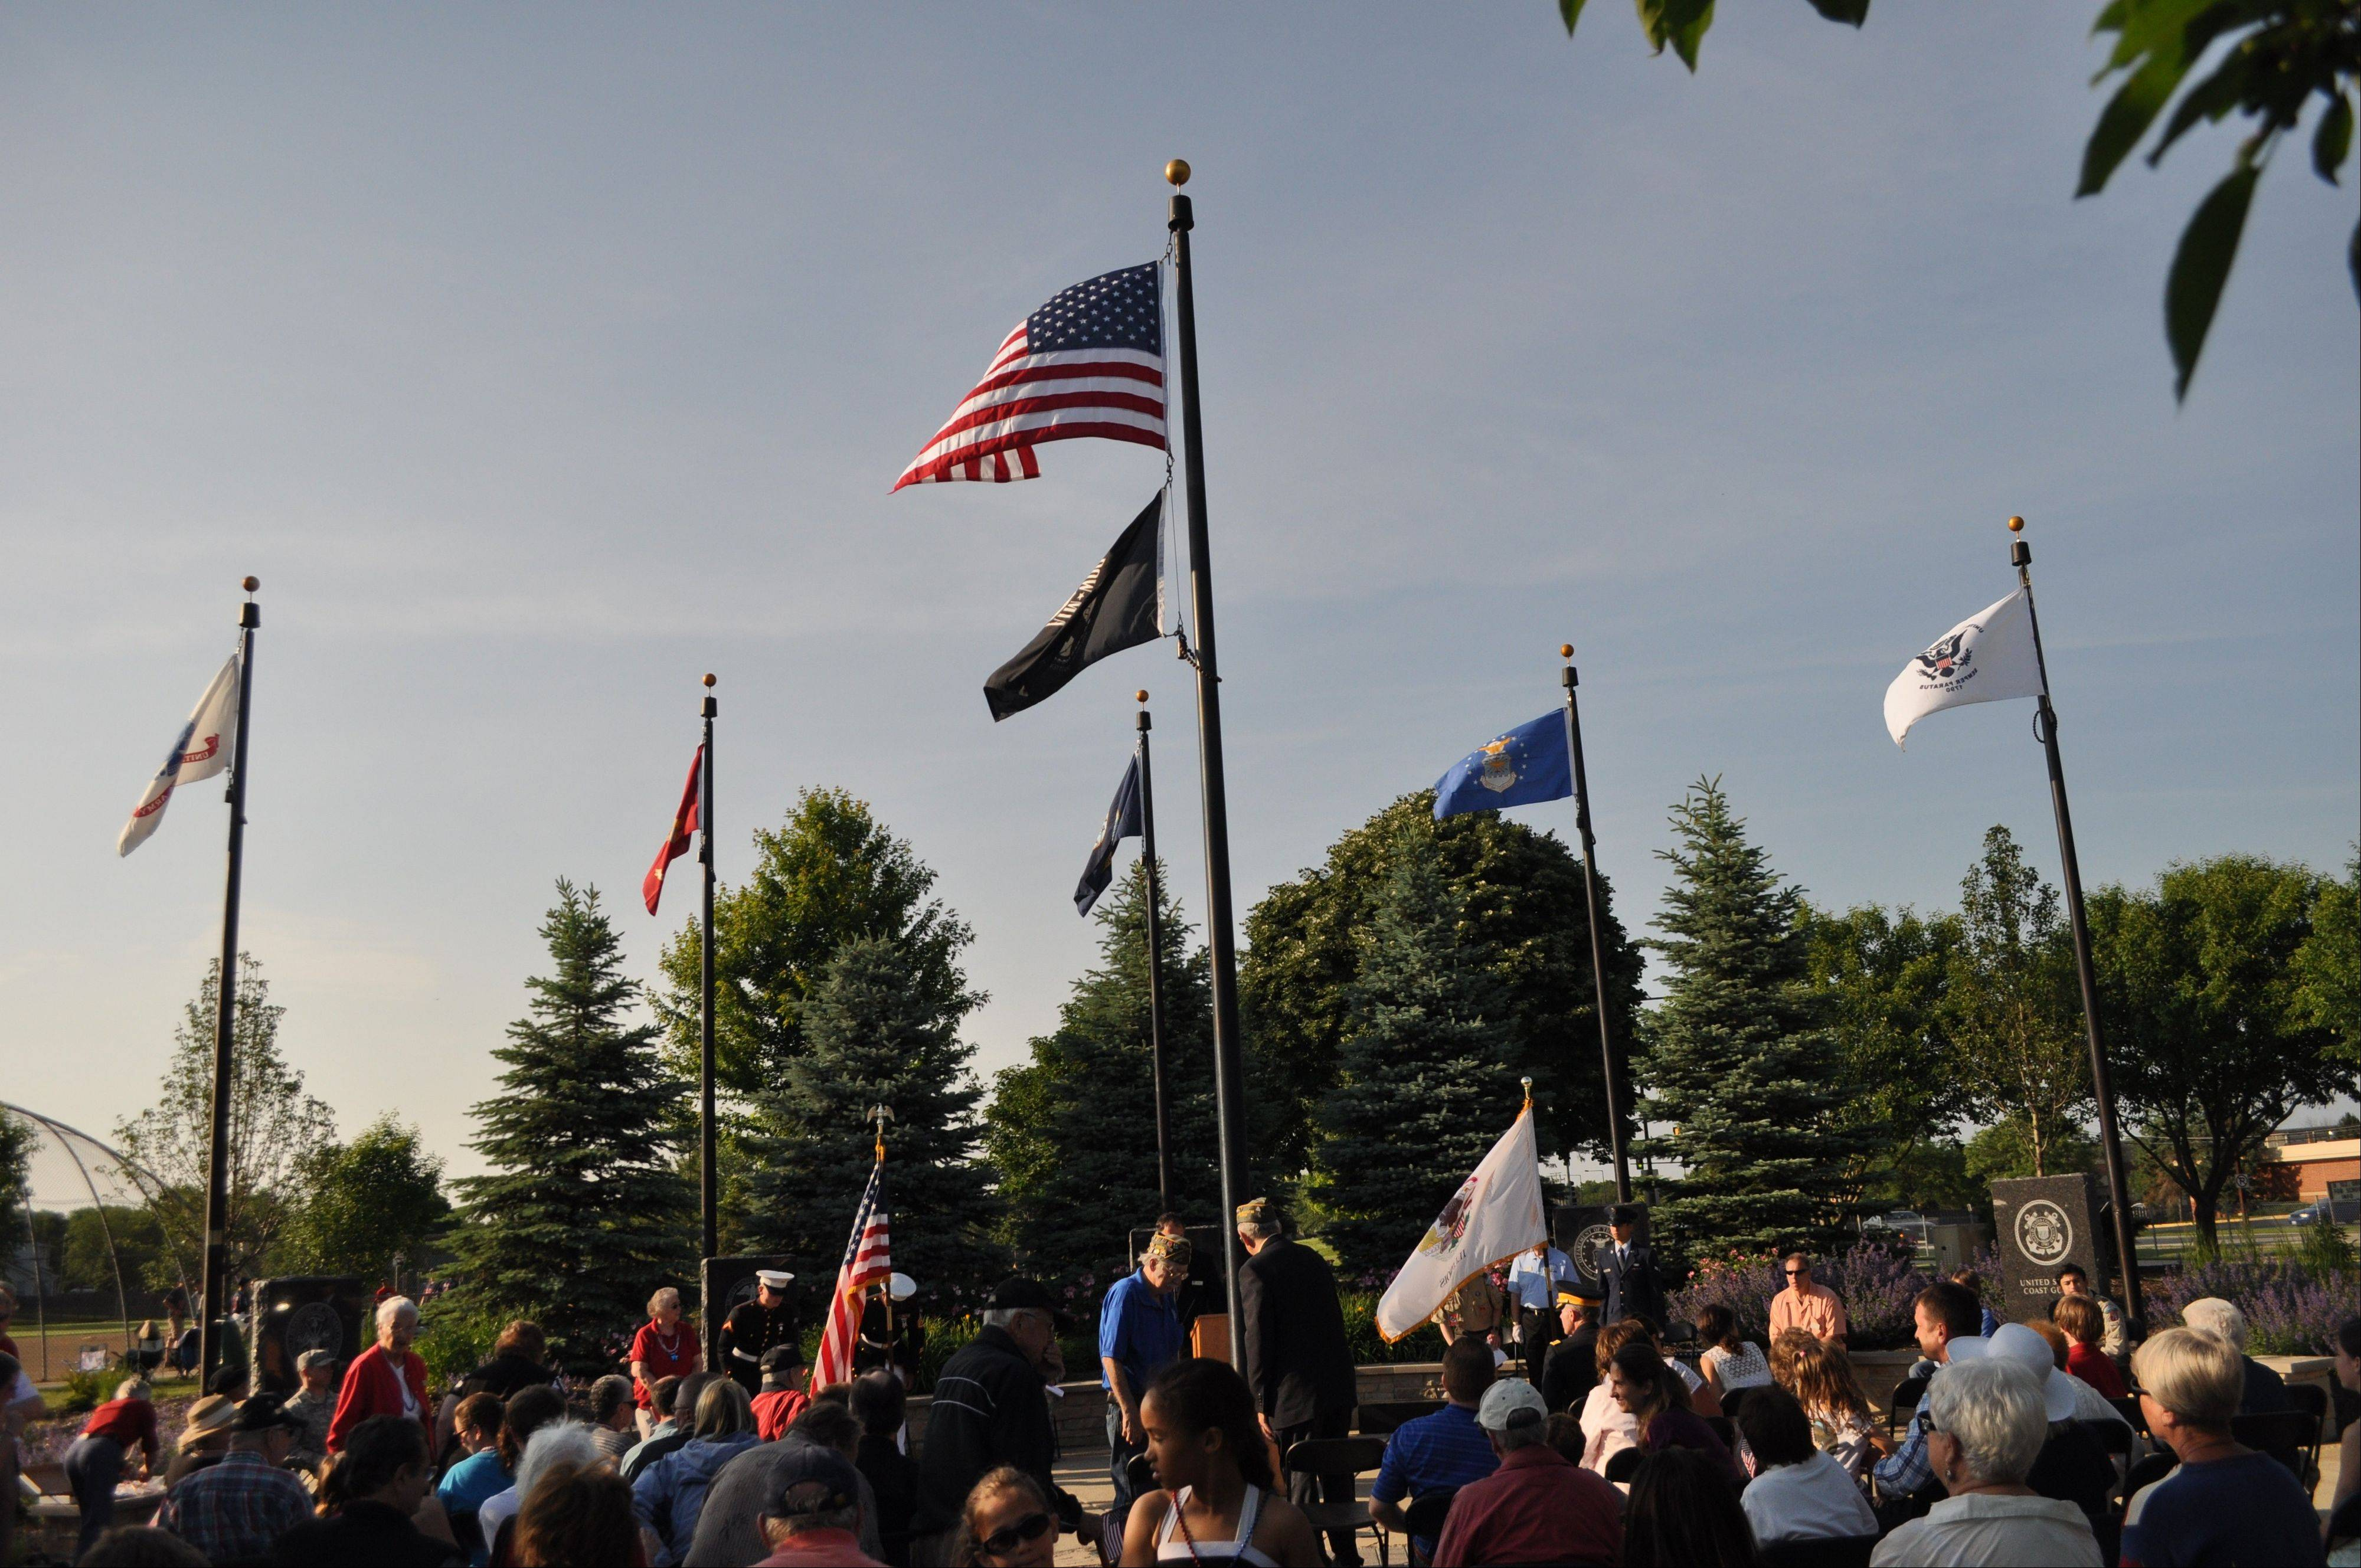 More than 100 people attended as members of the Armed Forces raised a flag for each of the five branches of the service at the Flag Day ceremonies held at Veterans Park in Buffalo Grove.